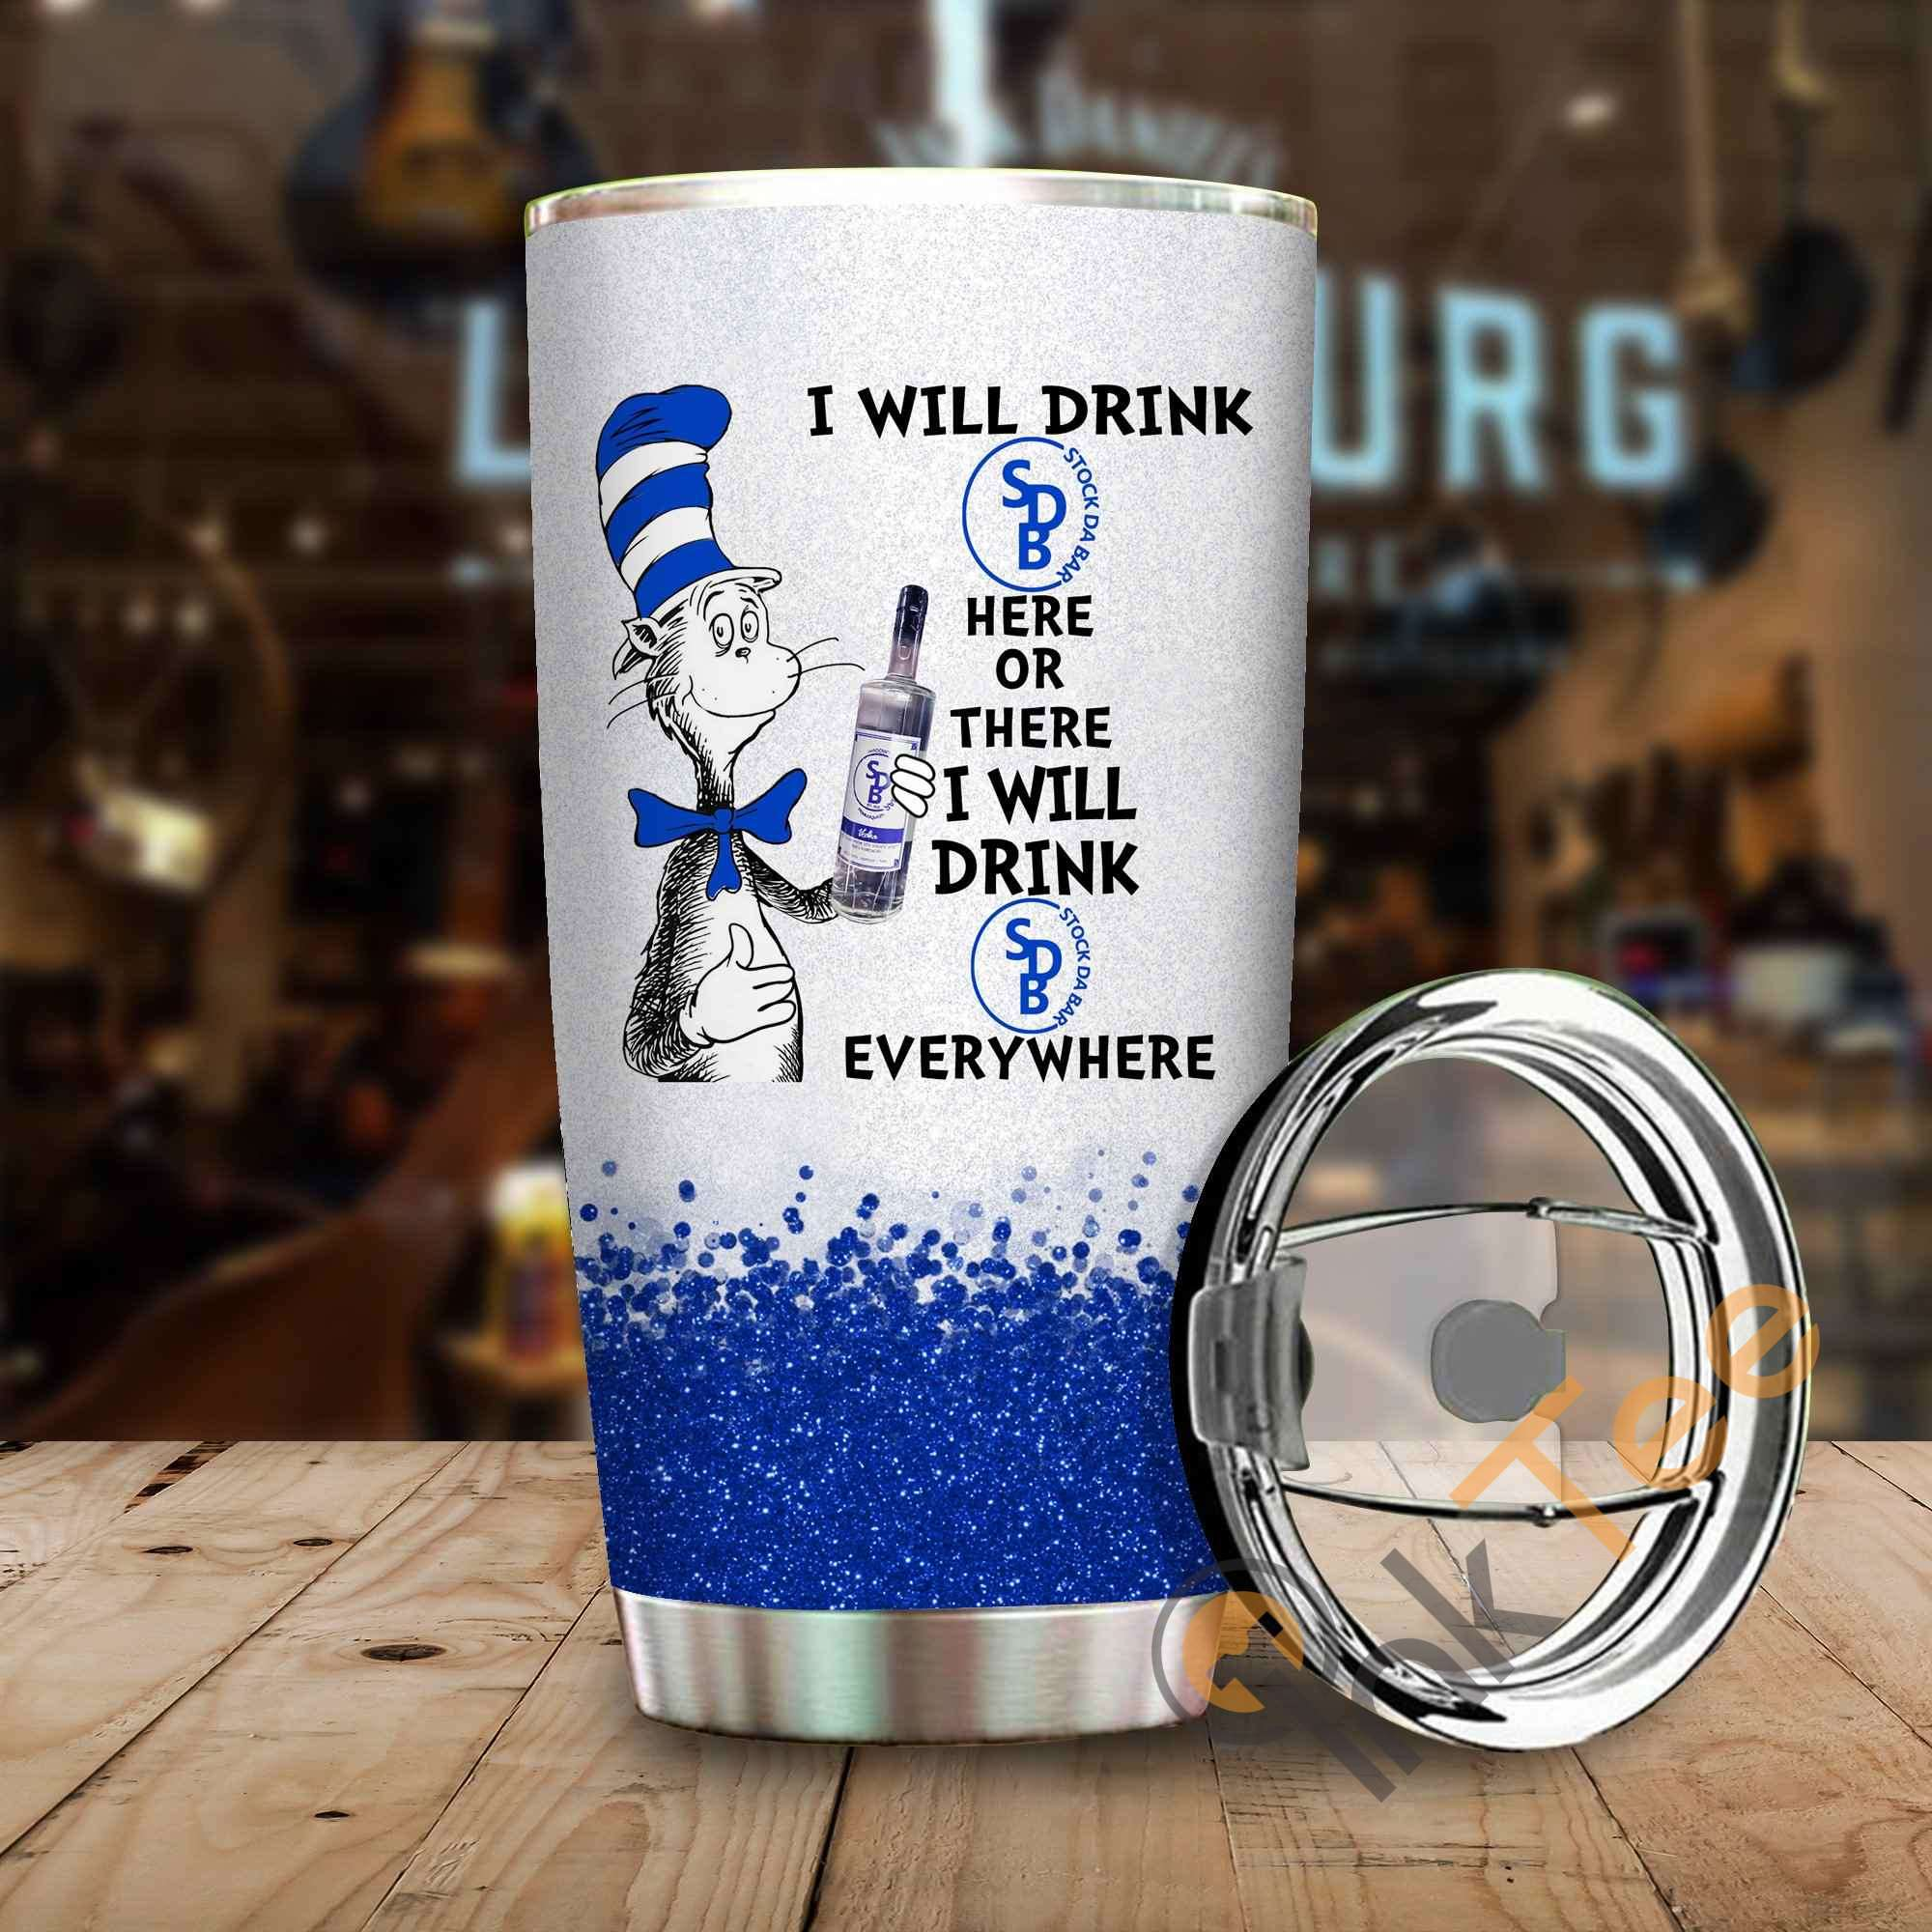 Dr Seuss I Will Drink Sdb Stock Da Bar Here Or There Amazon Best Seller Sku 3957 Stainless Steel Tumbler